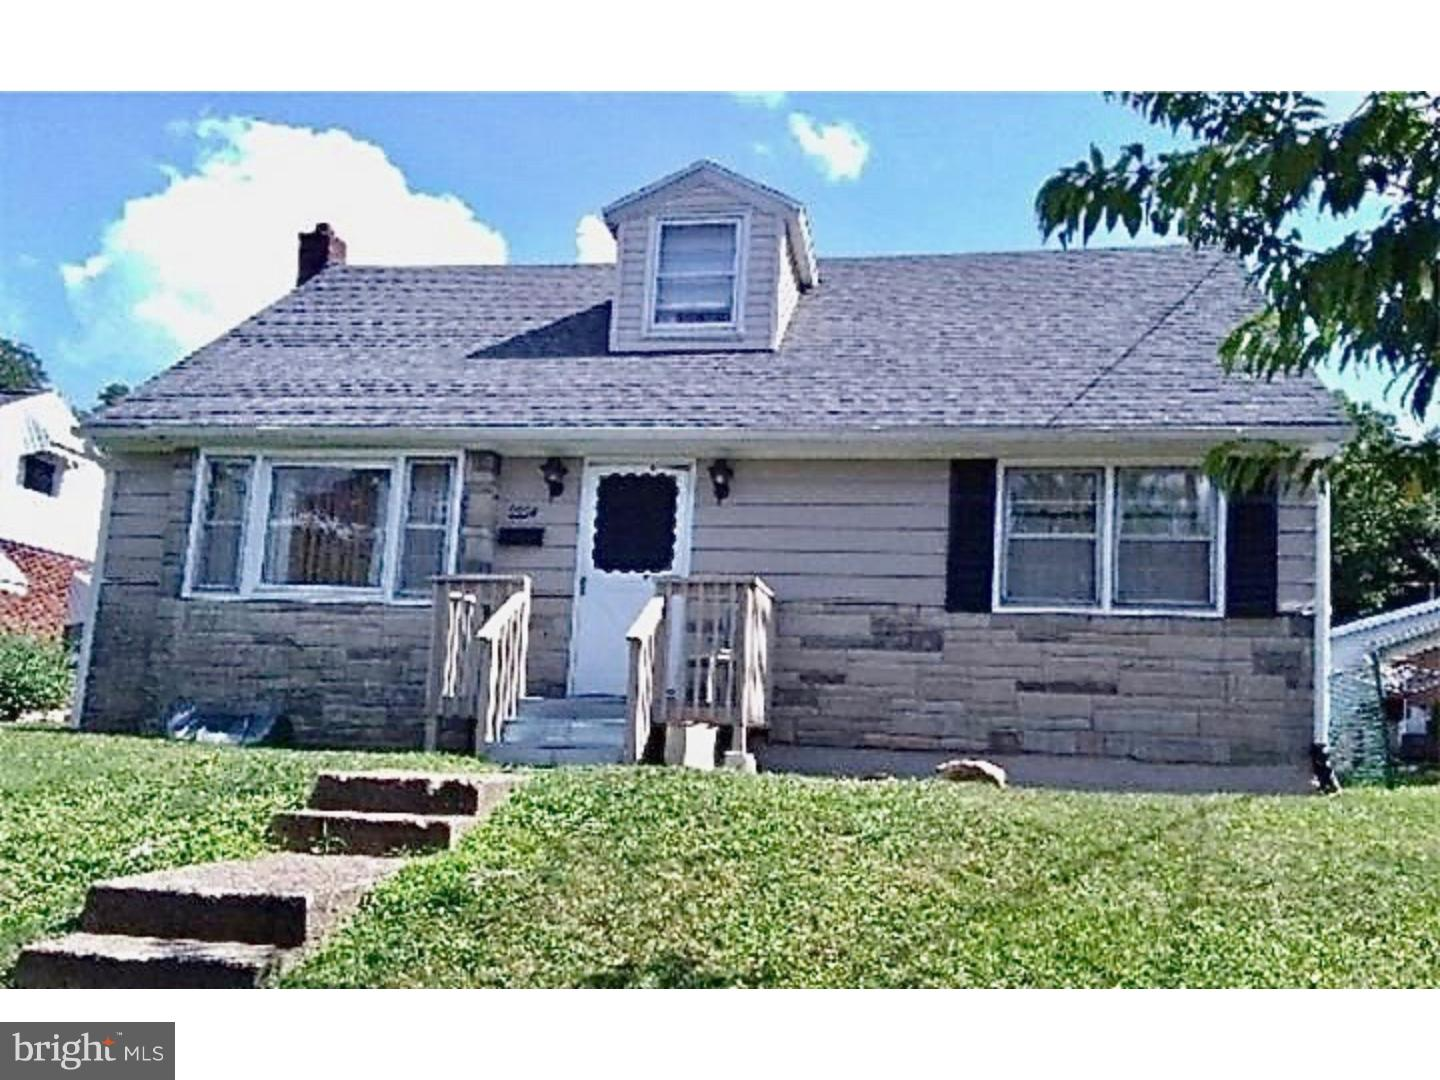 2224 WALNUT STREET, ASHLAND, PA 17921